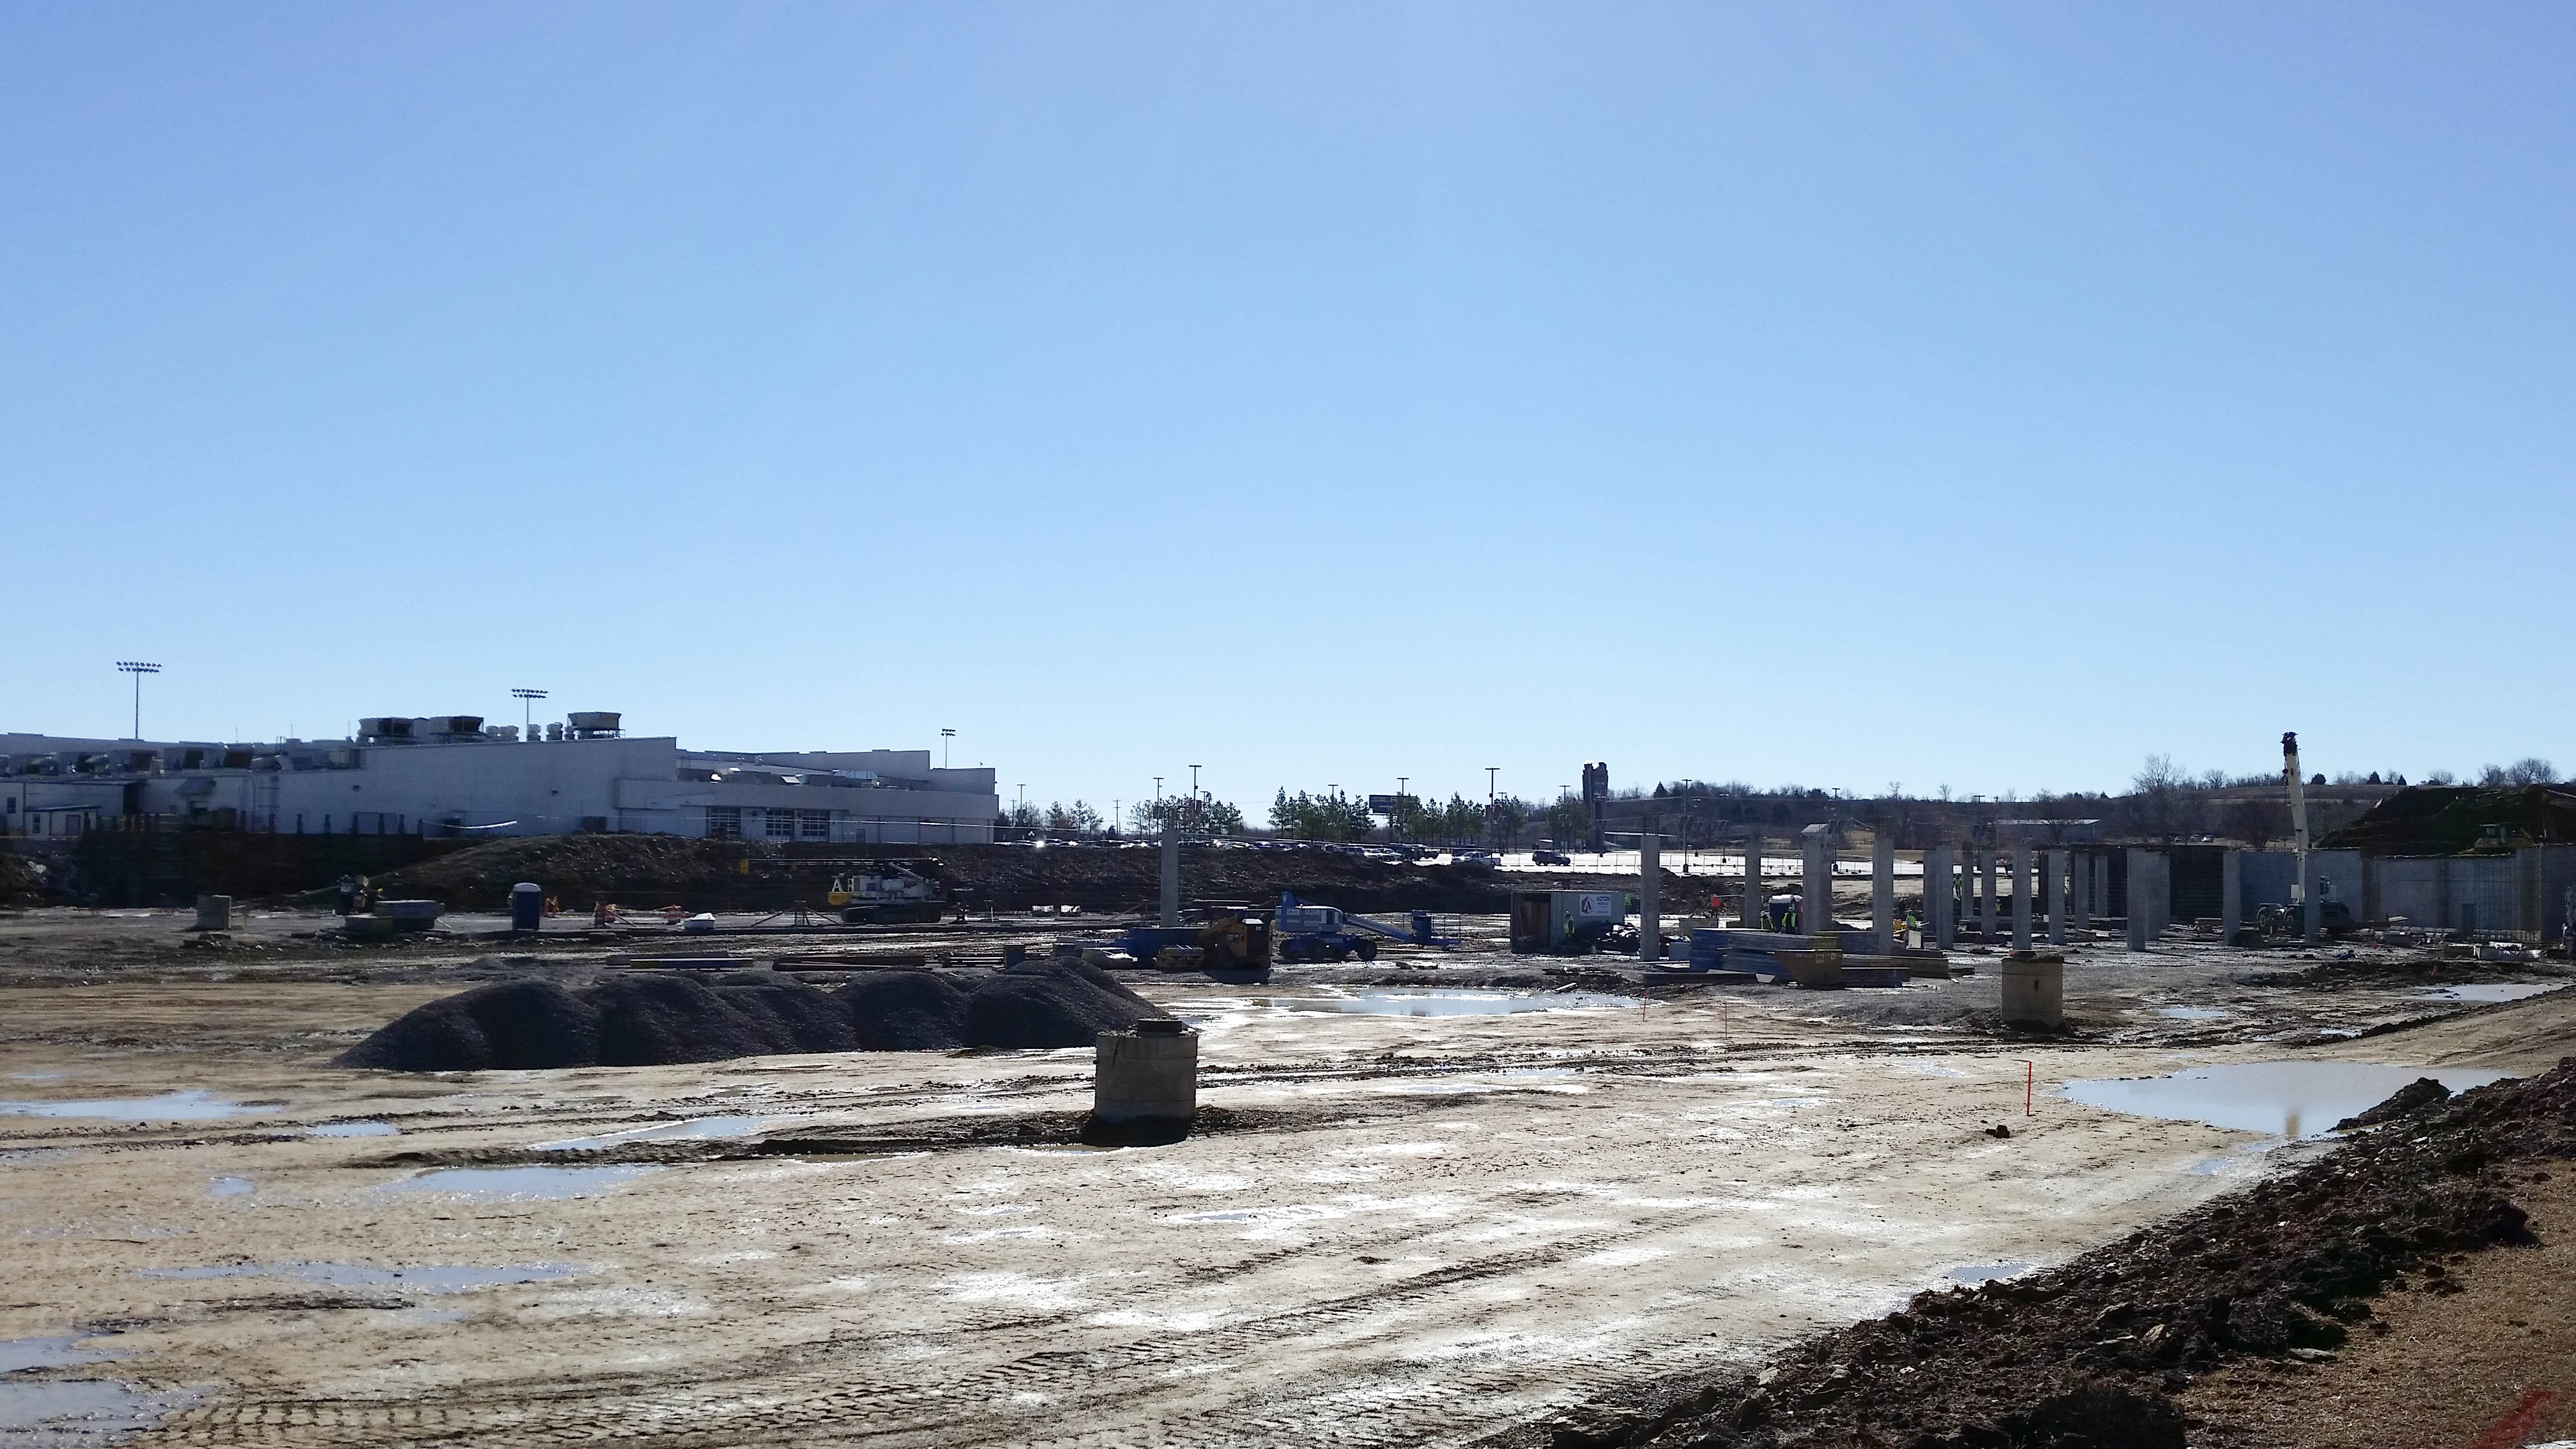 Online: Photos and video of Tulsa Osage Casino construction